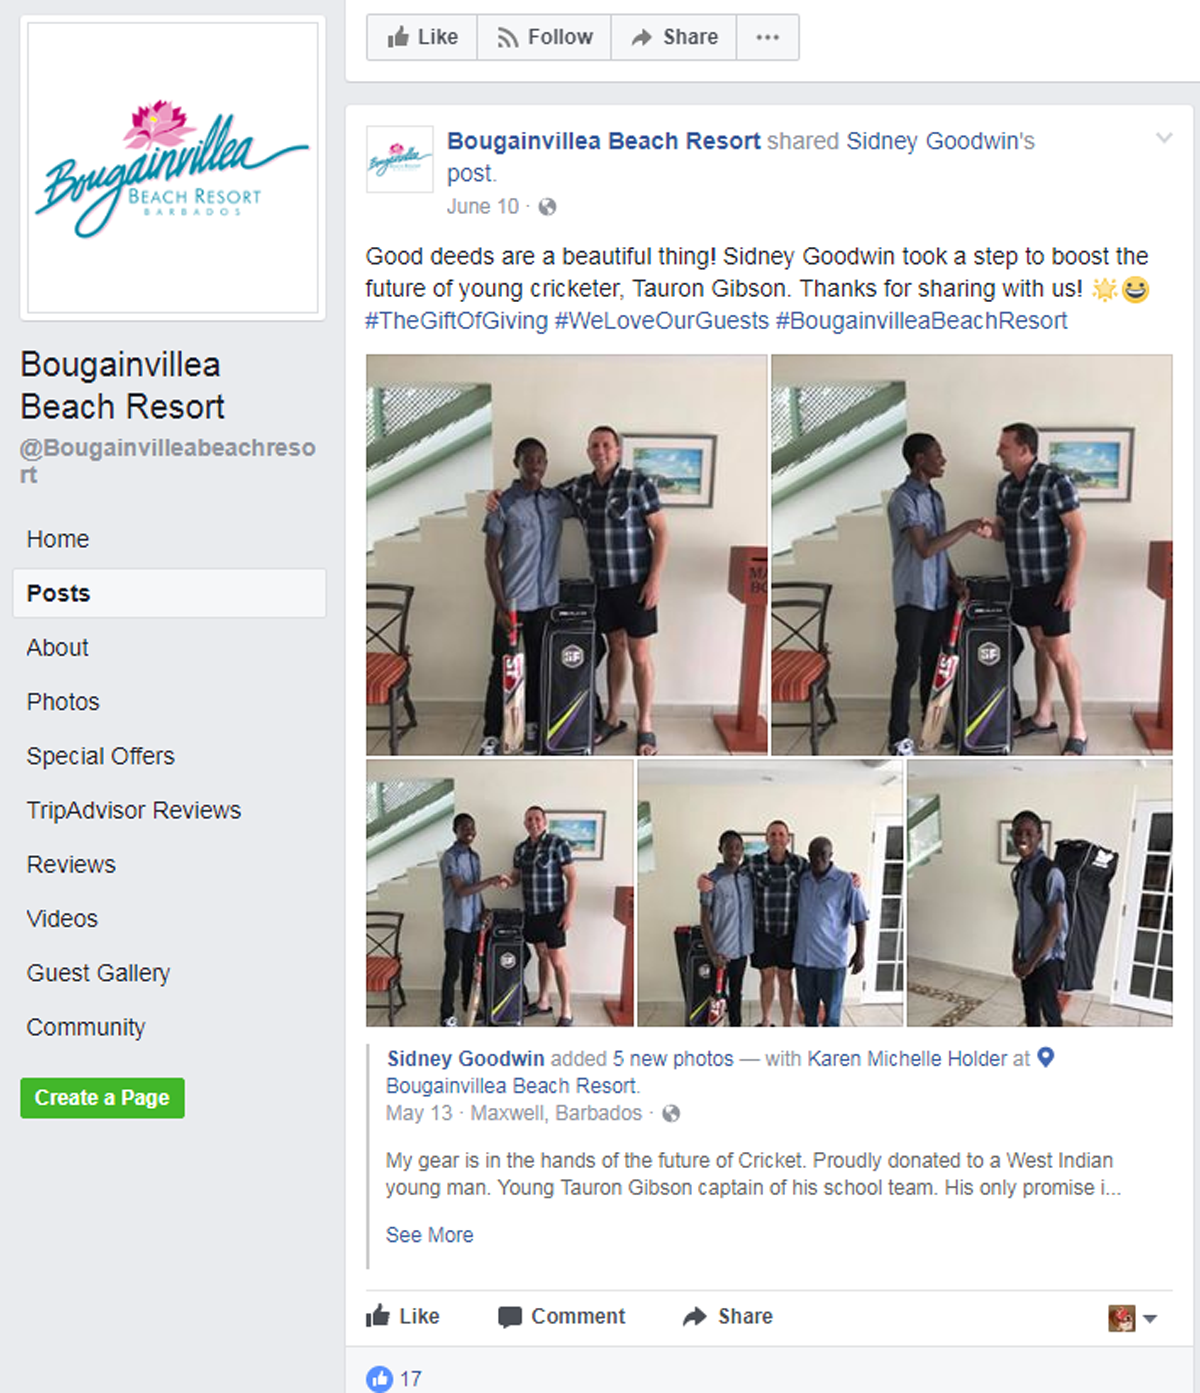 user-generated content facebook post by th bougainvillea beach resort